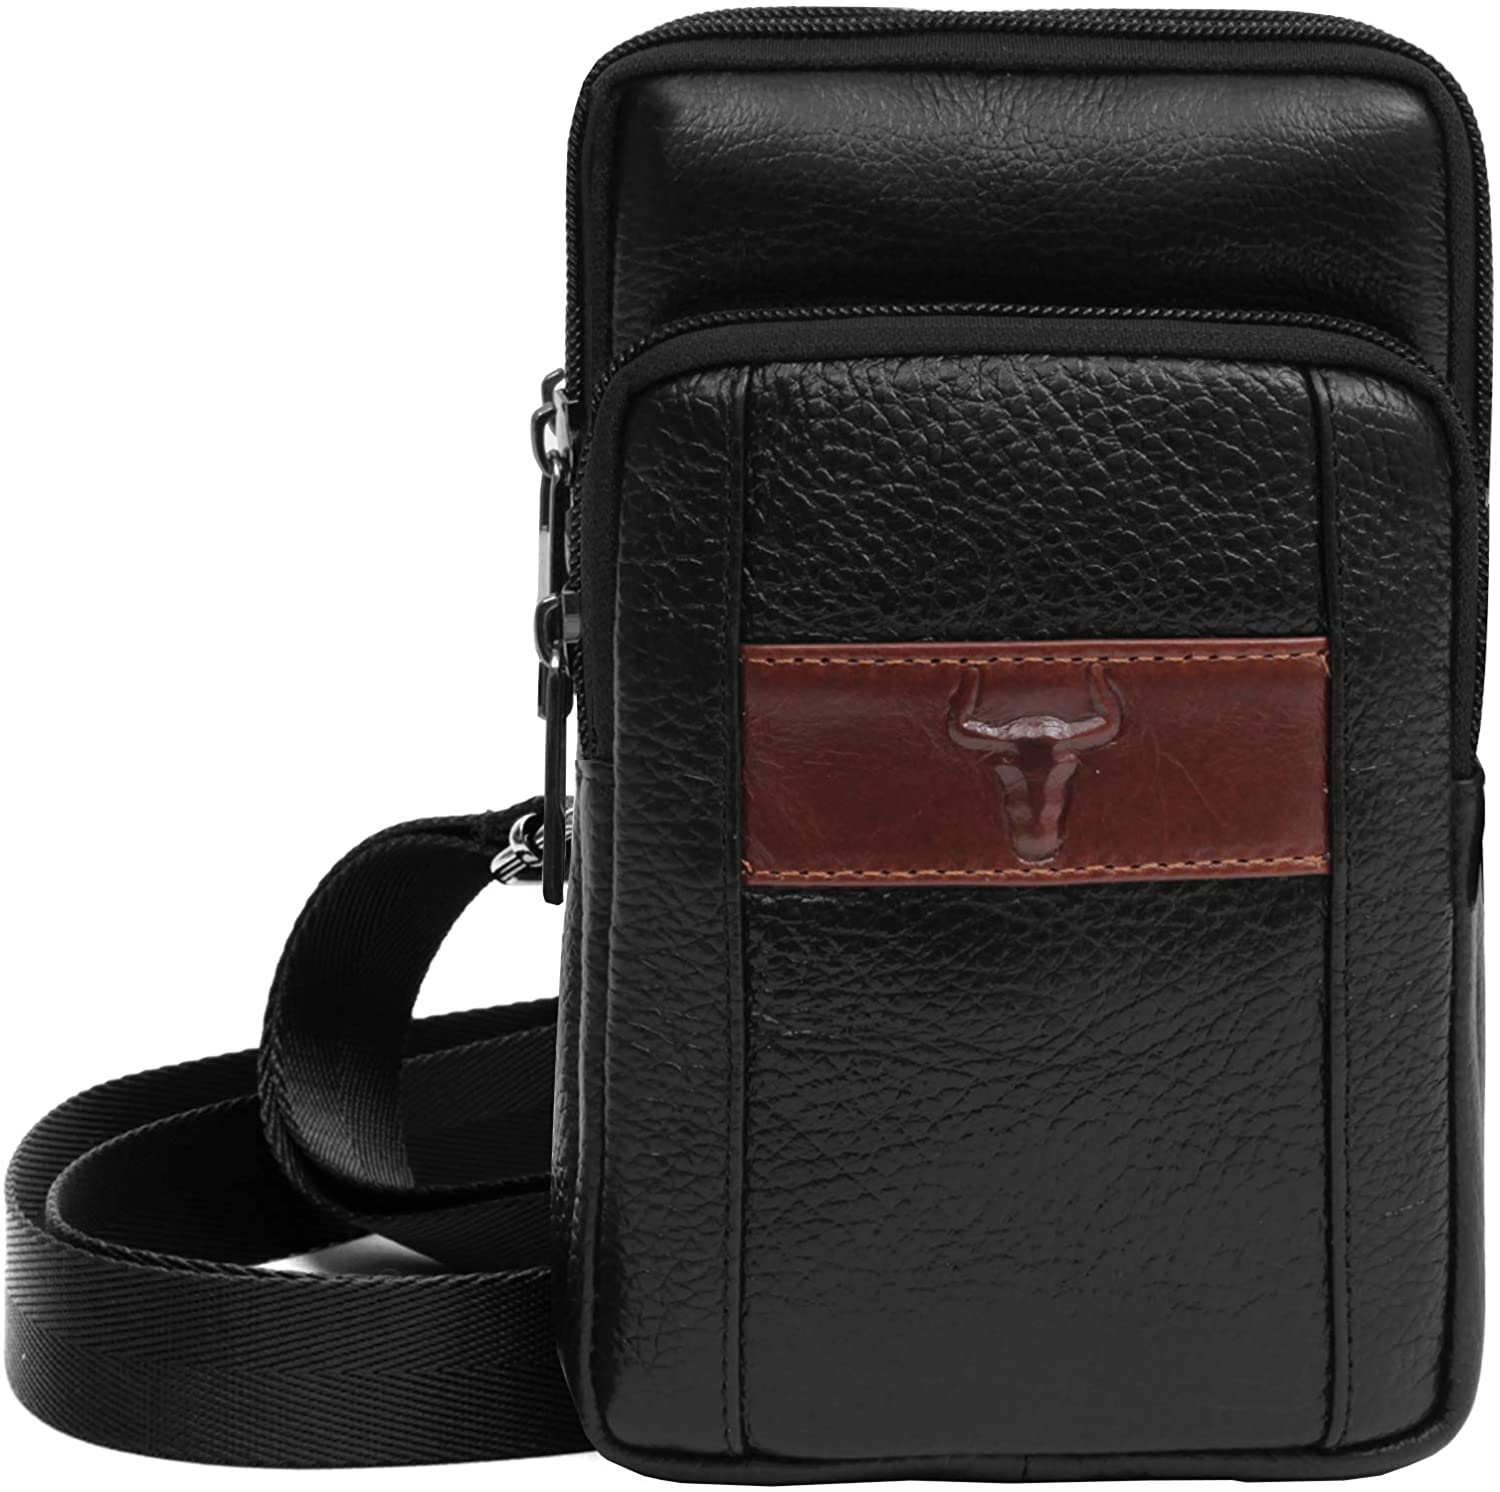 Messenger Bags Tactical Phone Bag Pouch Bum Leather Bag Waist Pack Travel Bags Cases Holsters Saddlebag (Black)